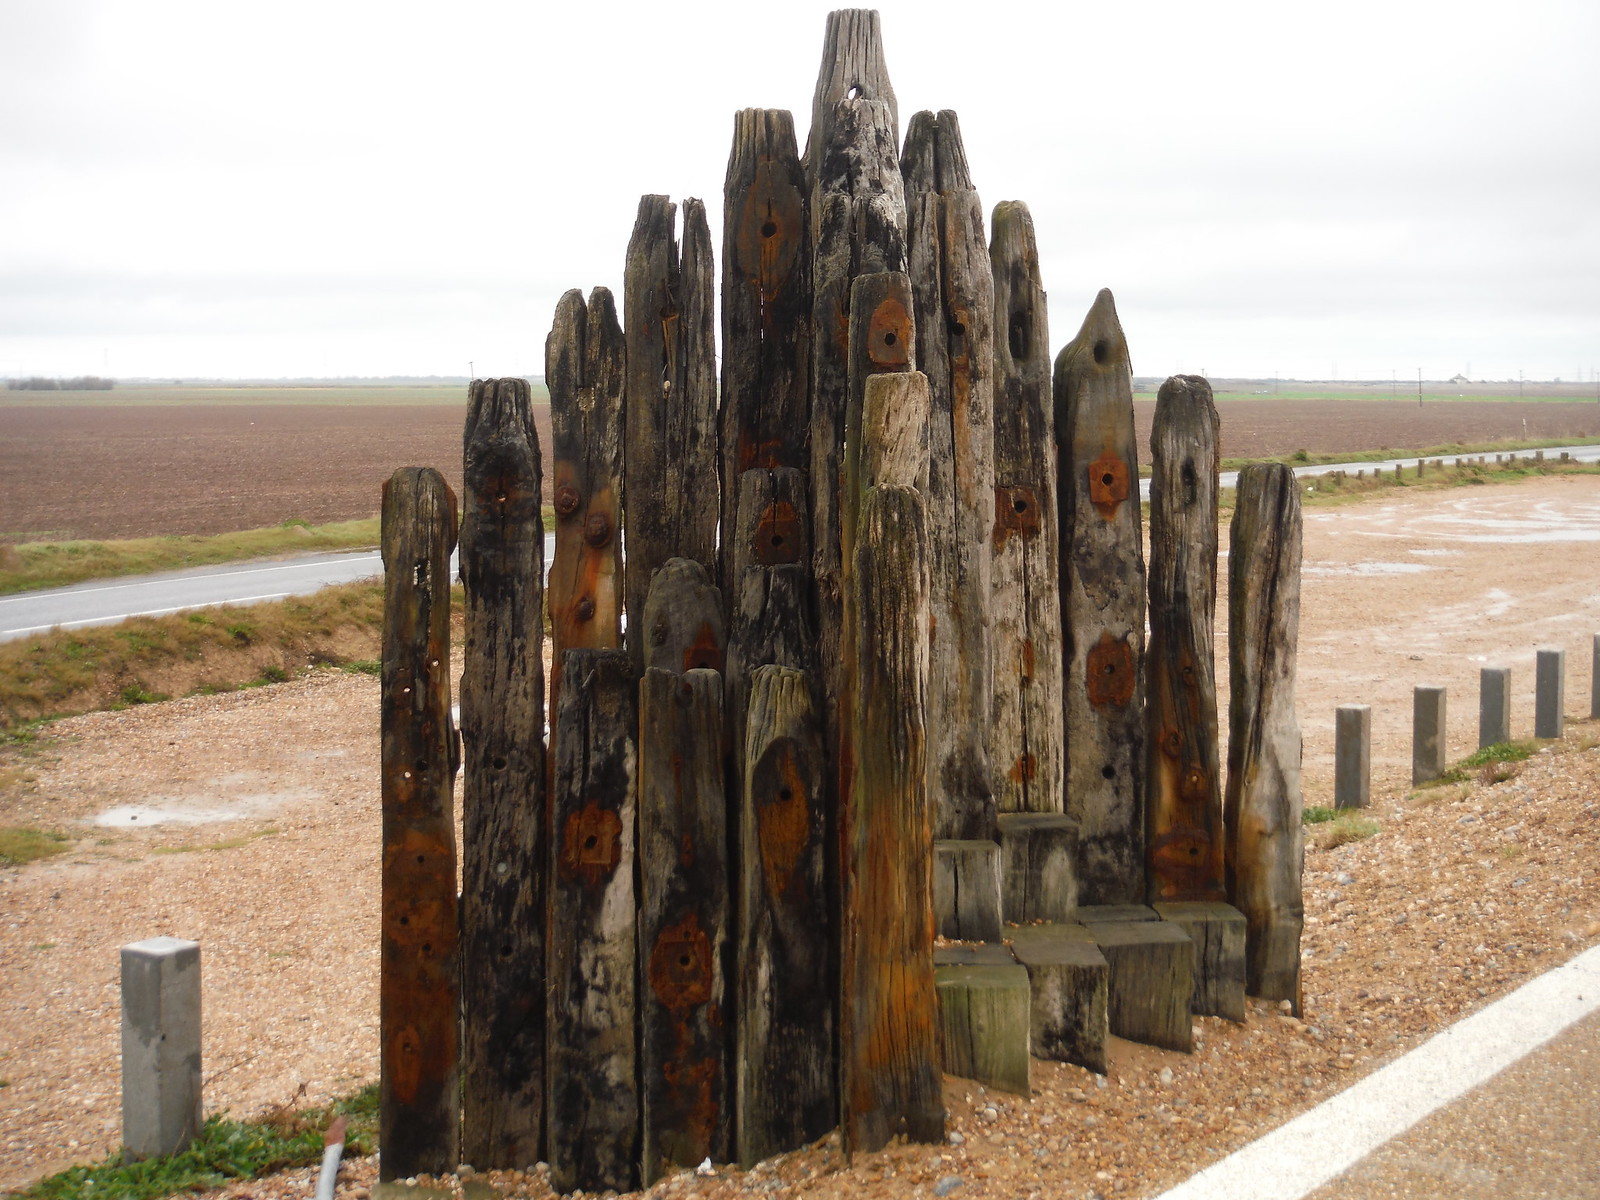 Furniture off Seawall Flood Defence, Camber SWC 154 - Rye to Dungeness and Lydd-on-Sea or Lydd or Circular